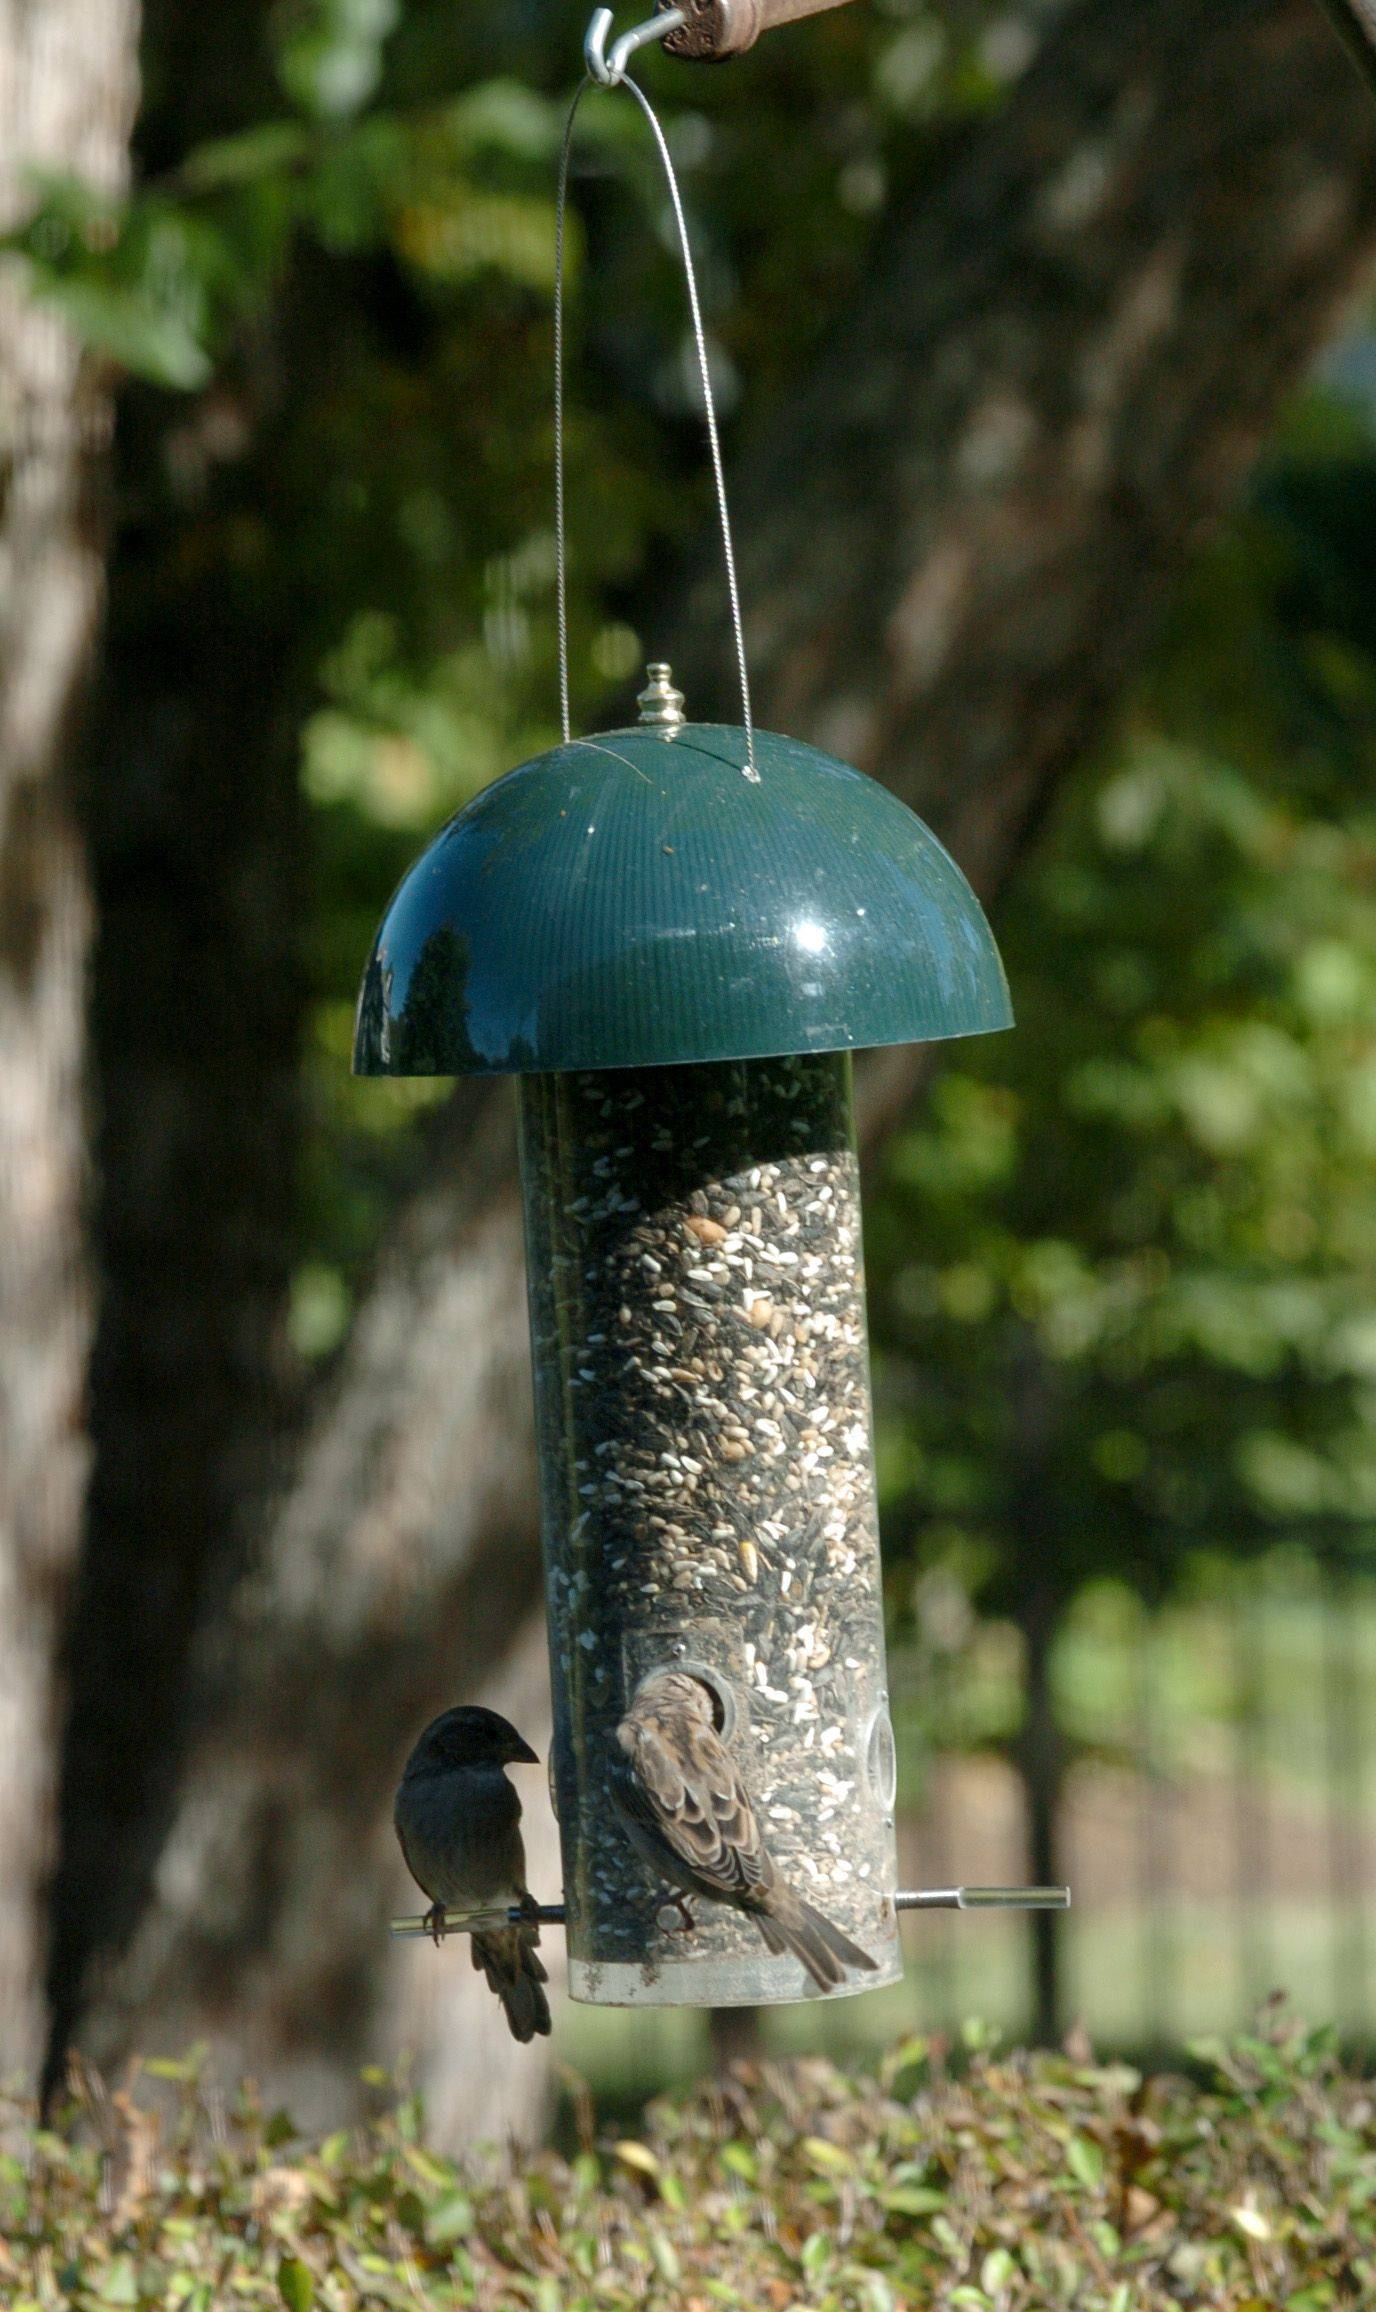 Birds enjoy their bird seeds because no squirrels have gotten into their food. The spring perches on Tom Degler's bird feeders only support birds.